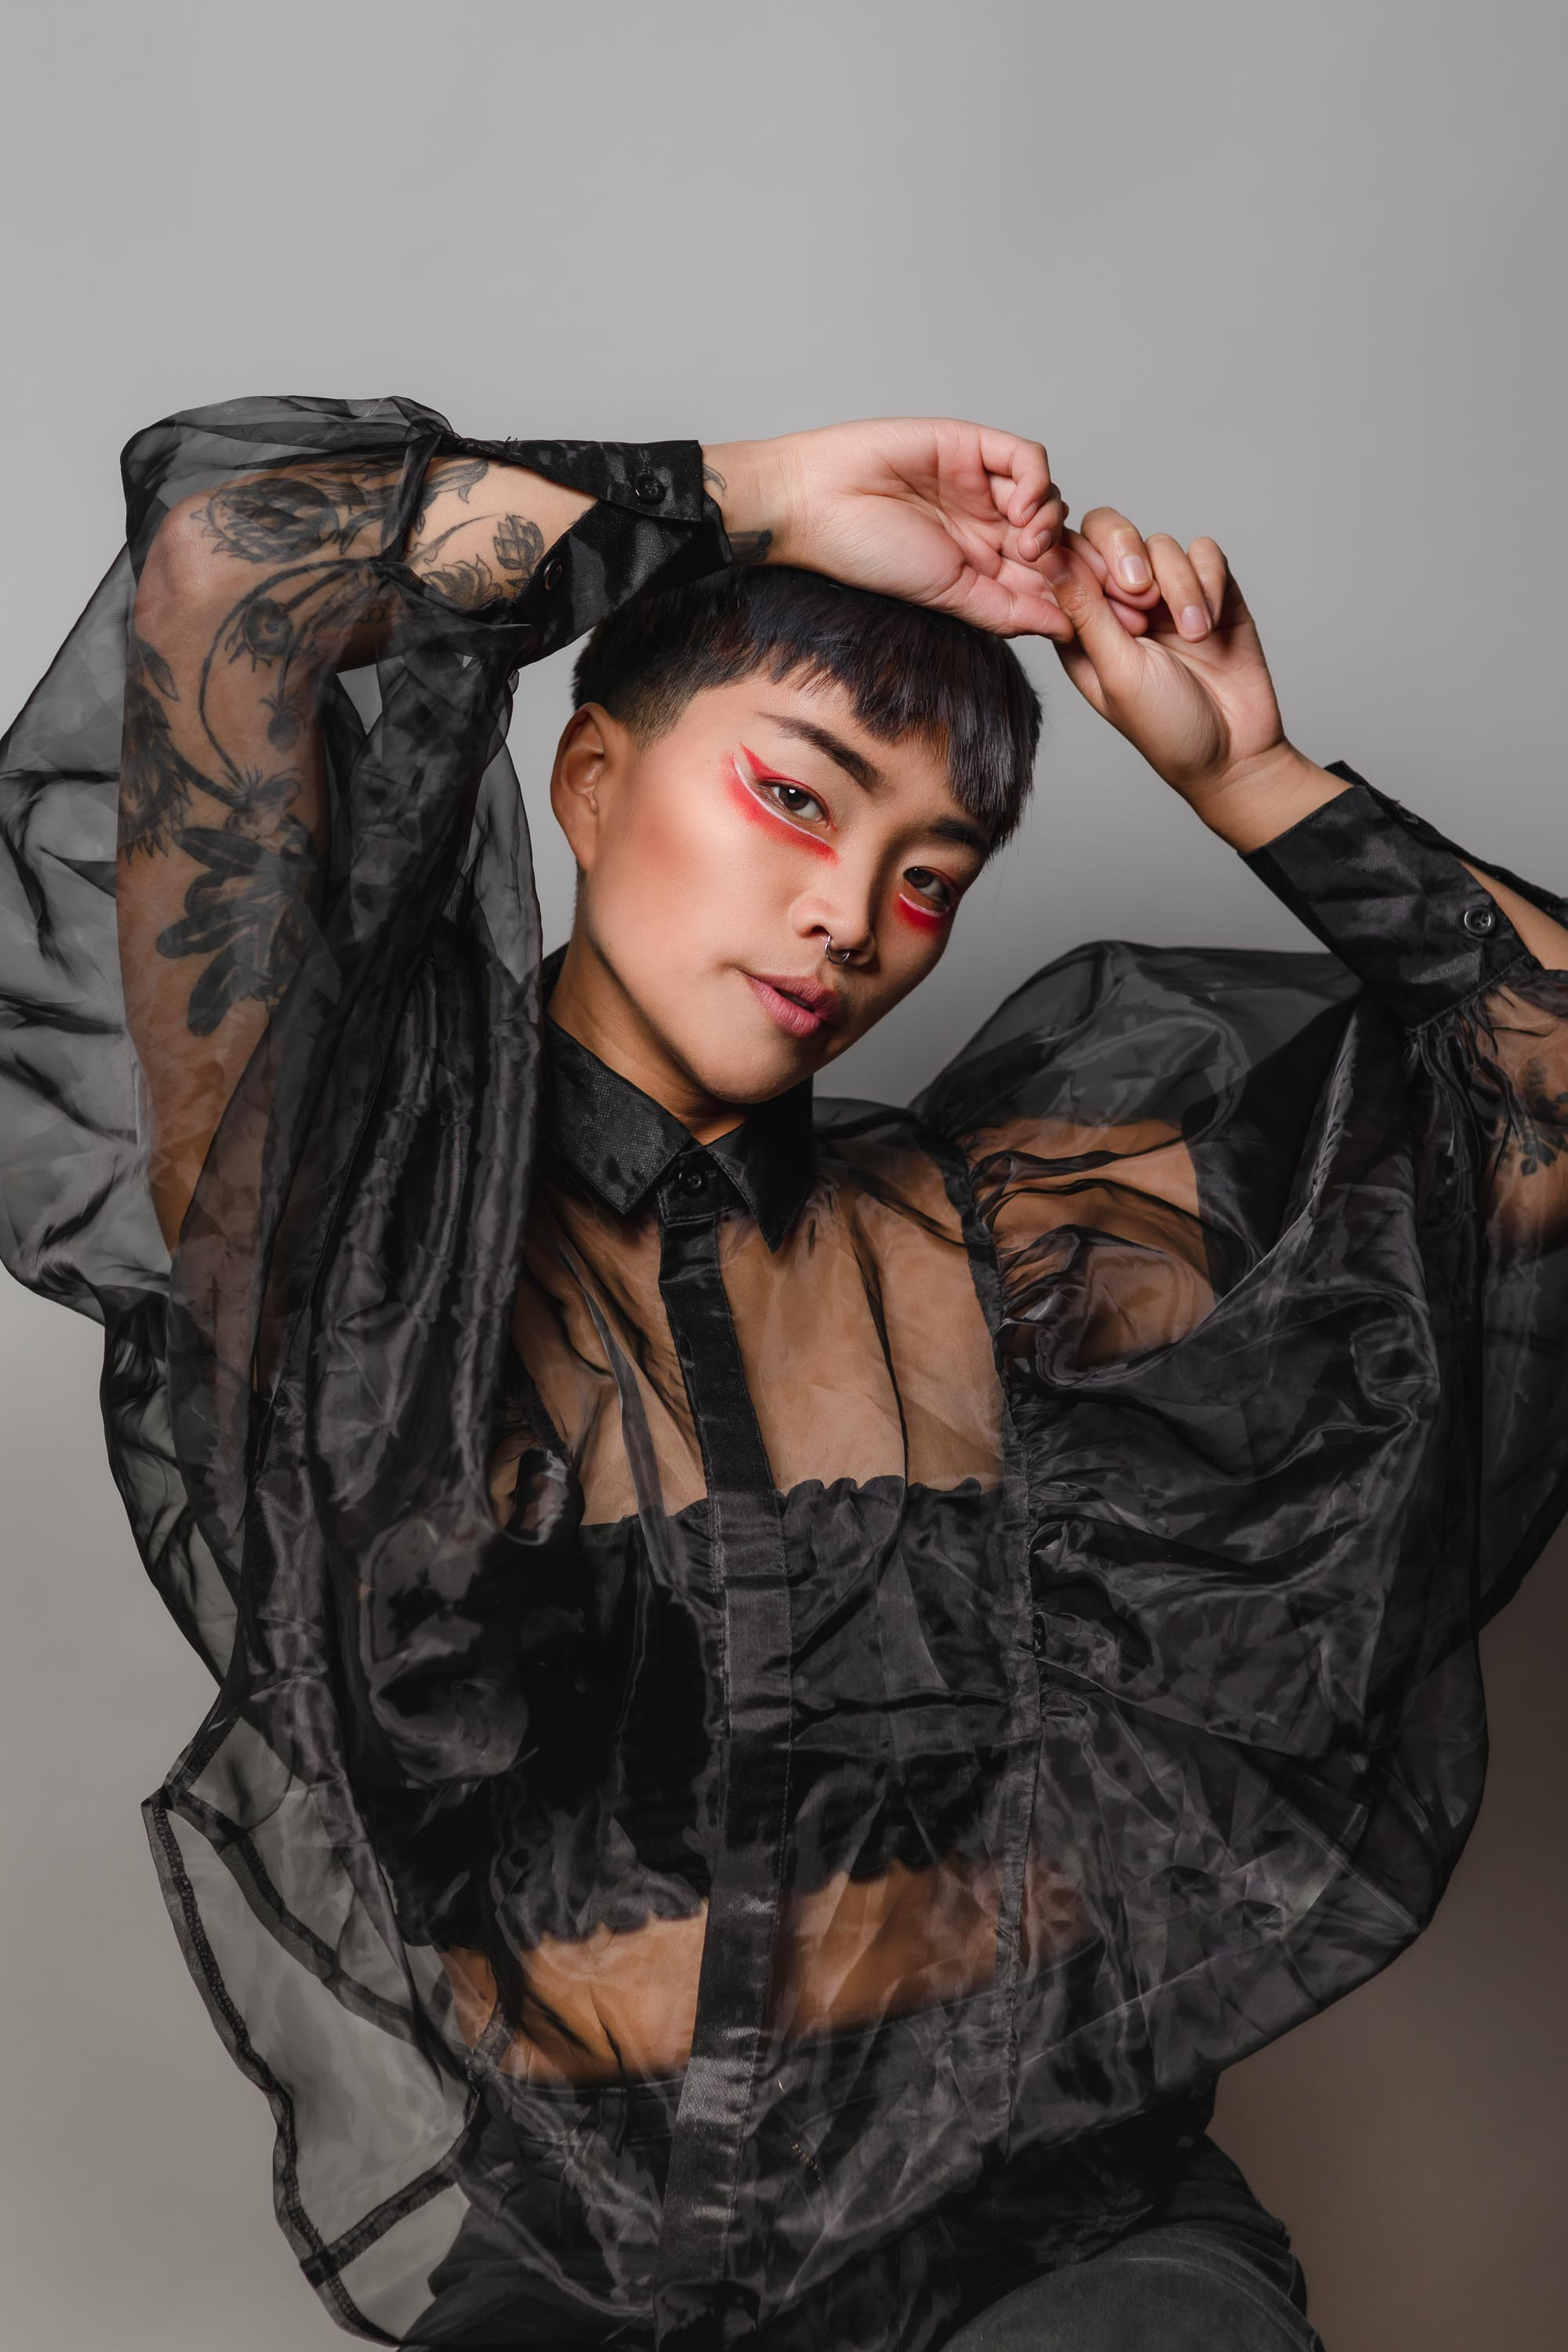 A Vietnamese gender-nonconforming model is wearing a tulle black shirt with their hands above their head.